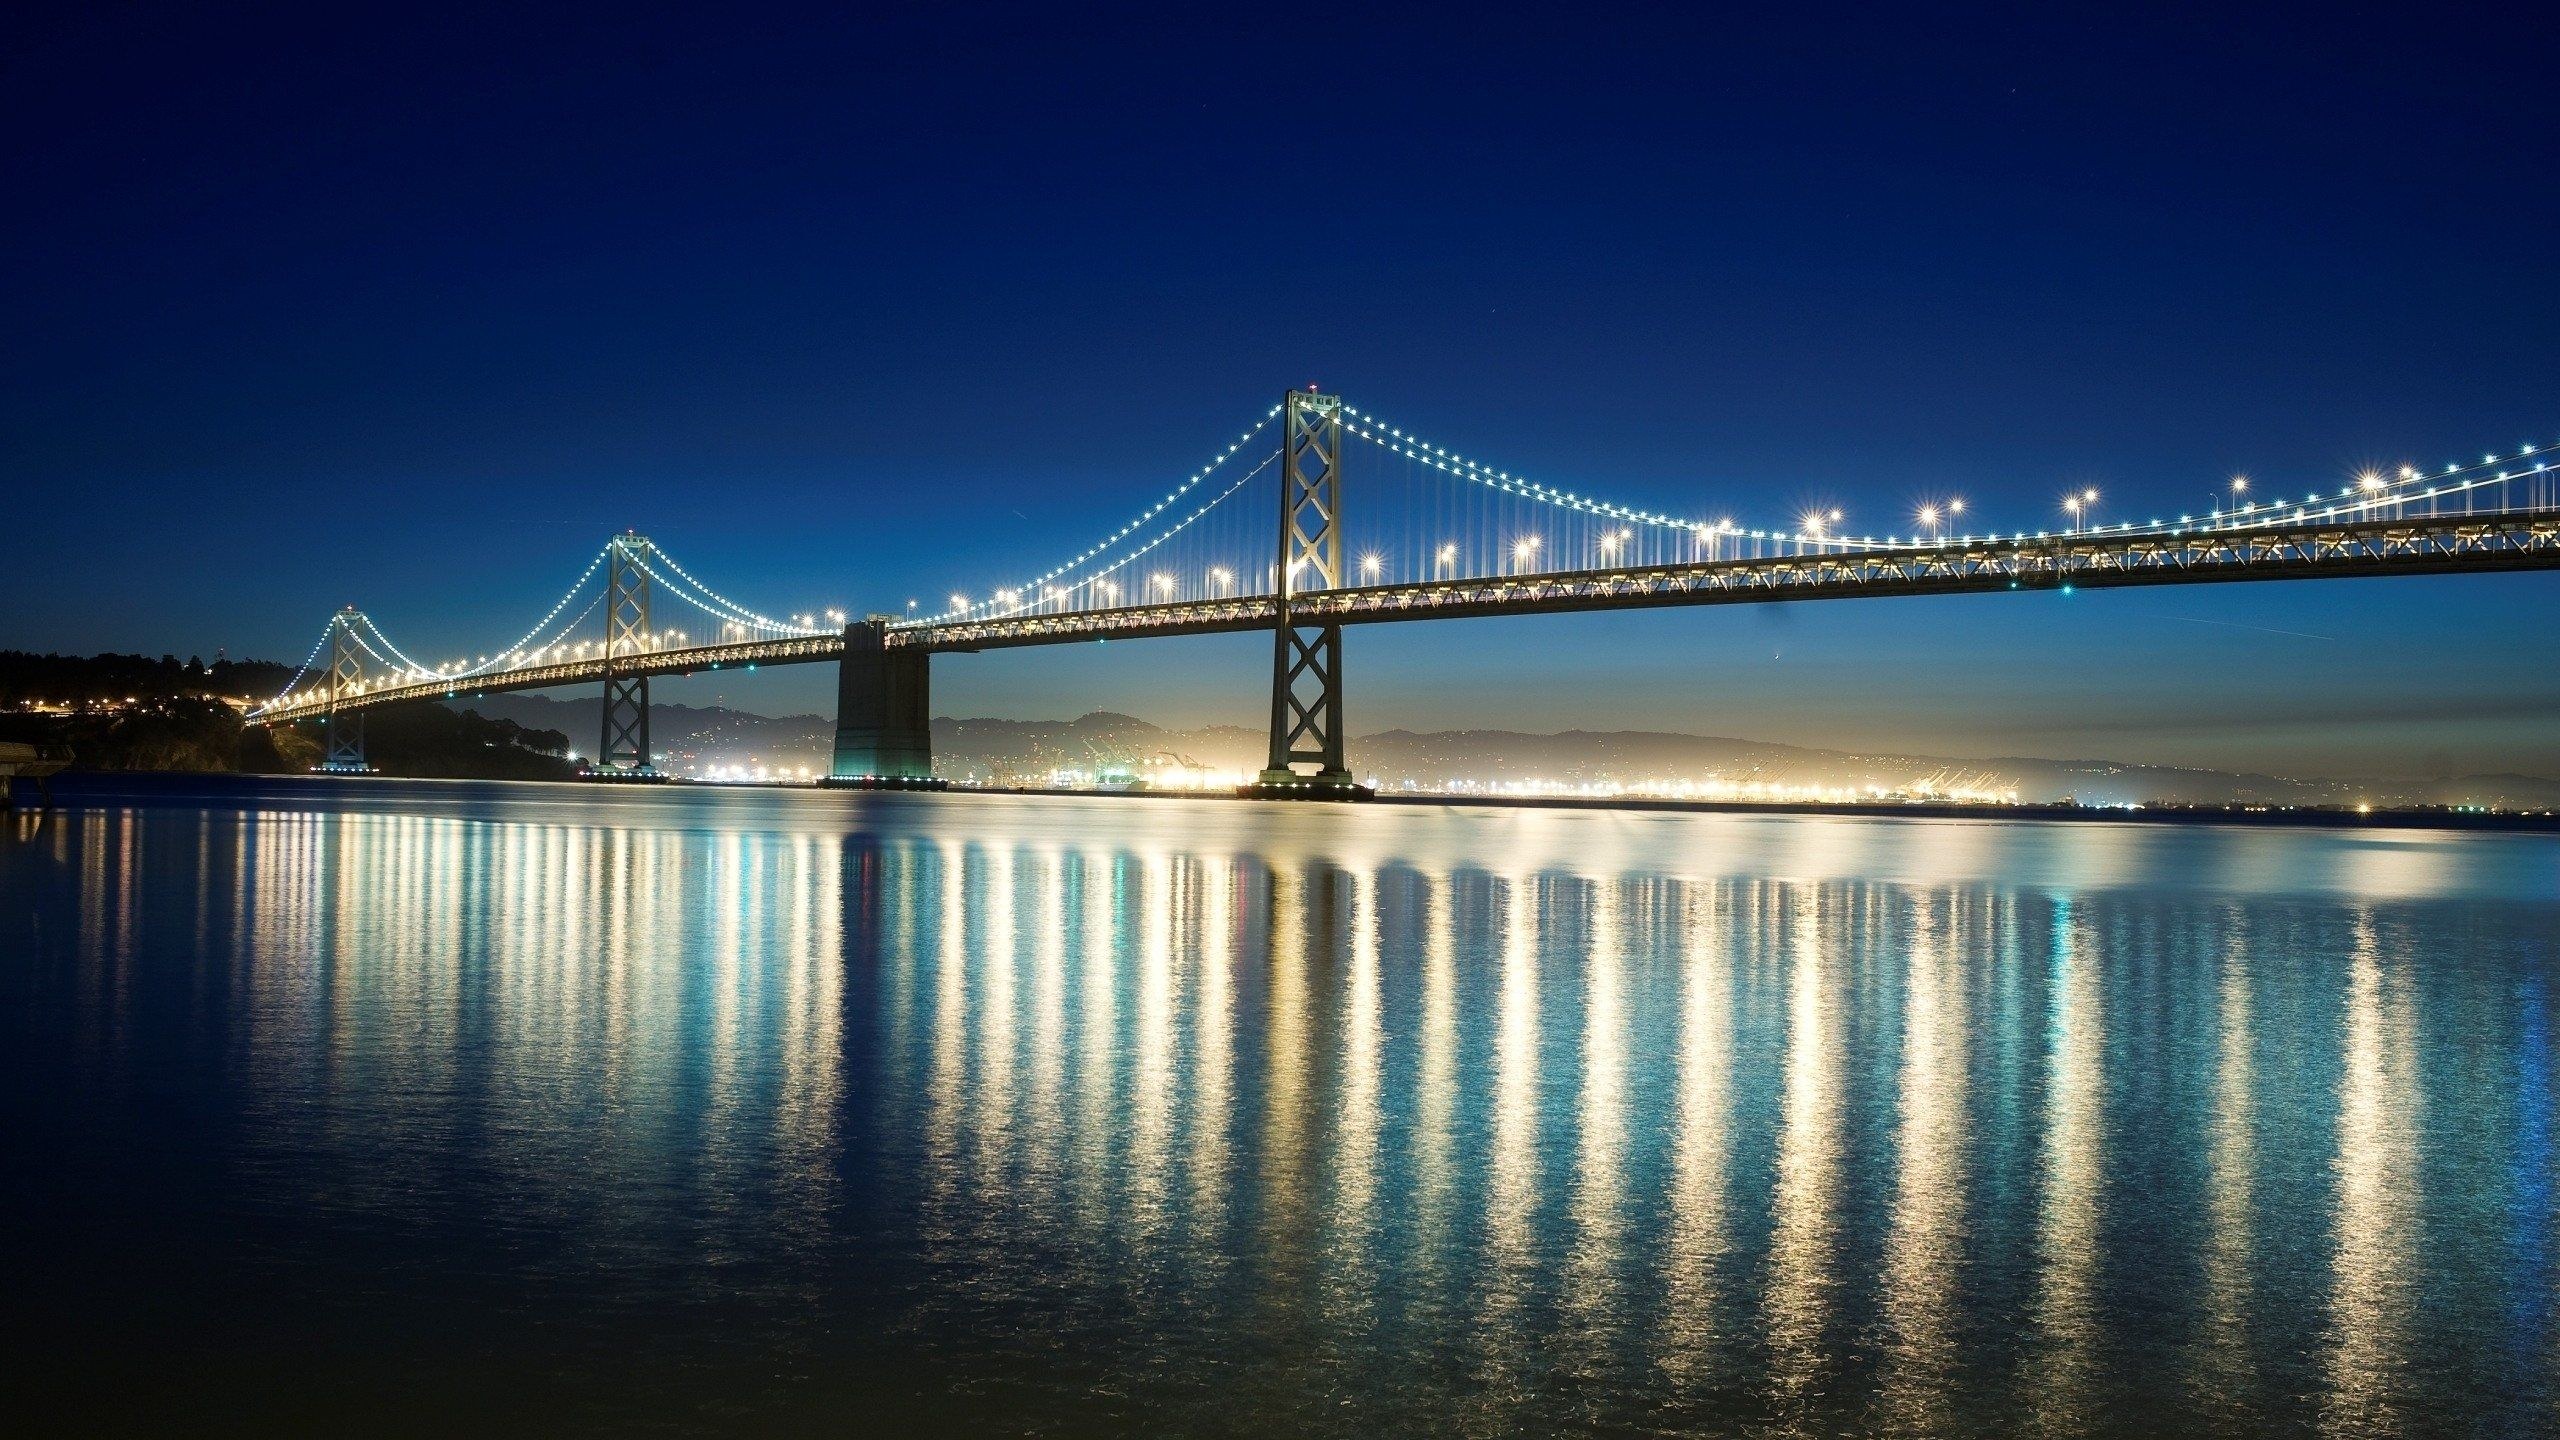 Bay Bridge San Francisco Night Viewid: 90440– BUZZERG 705